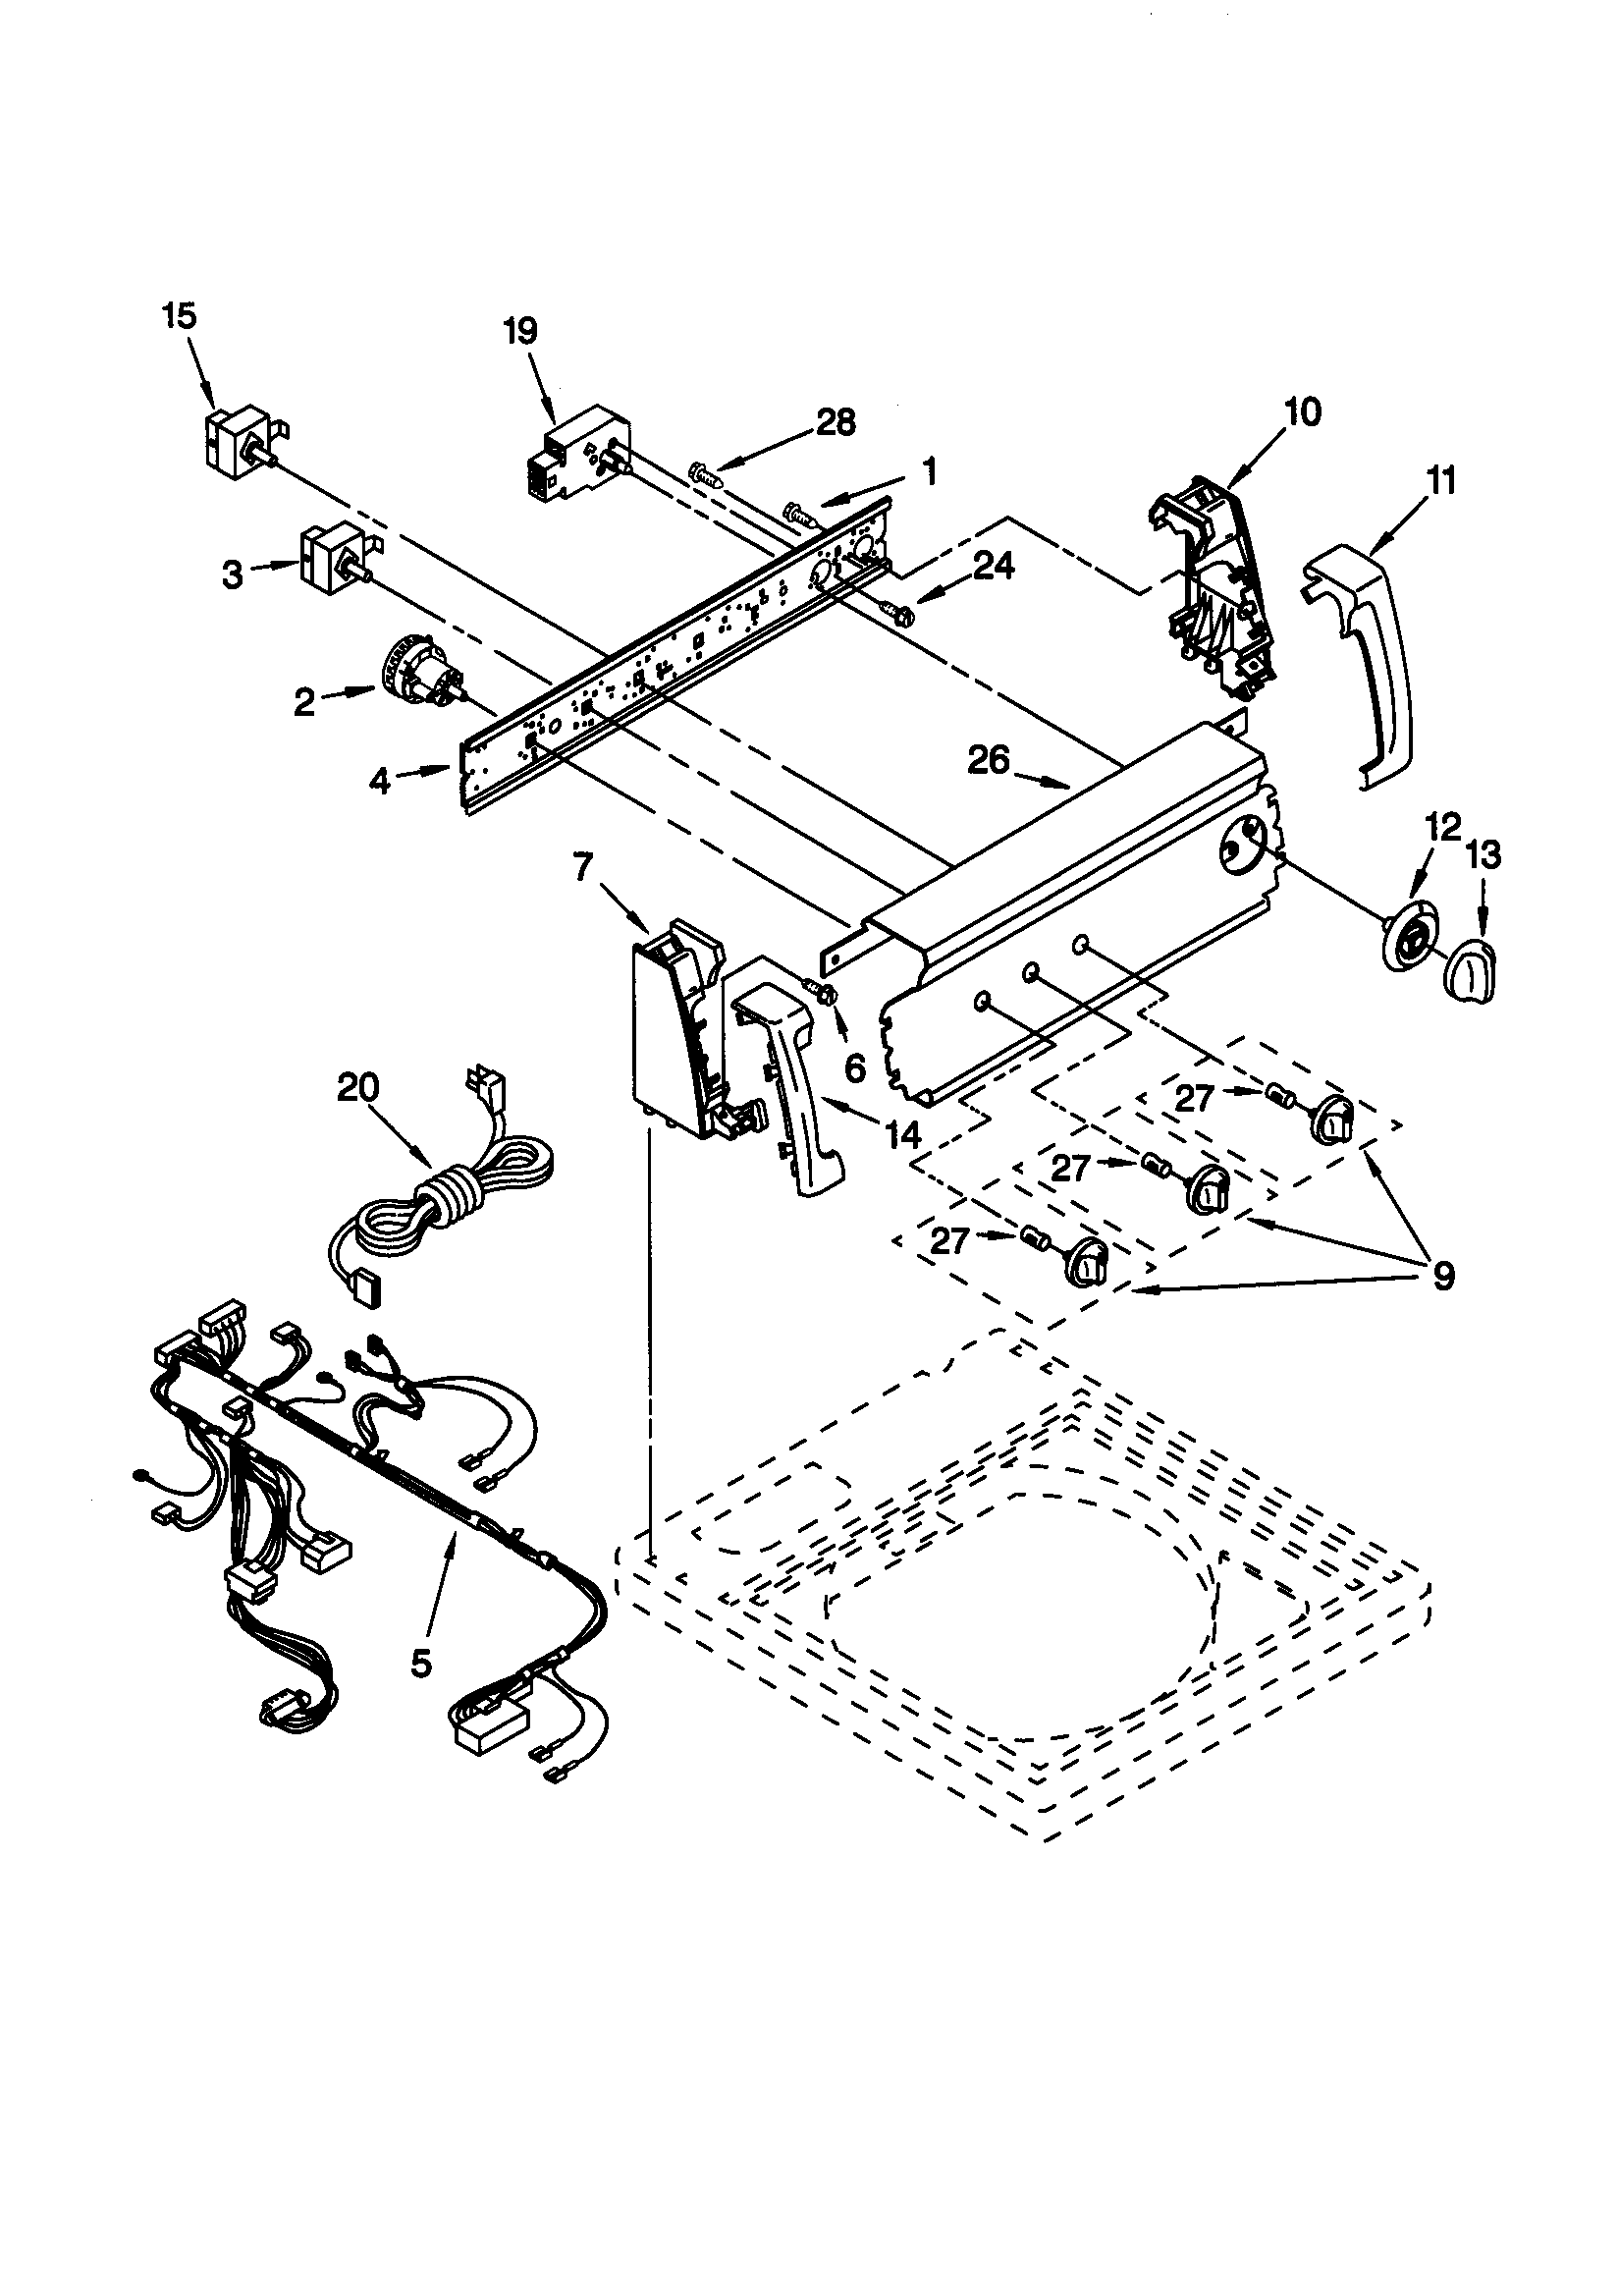 kenmore washer 592-49057 service manual